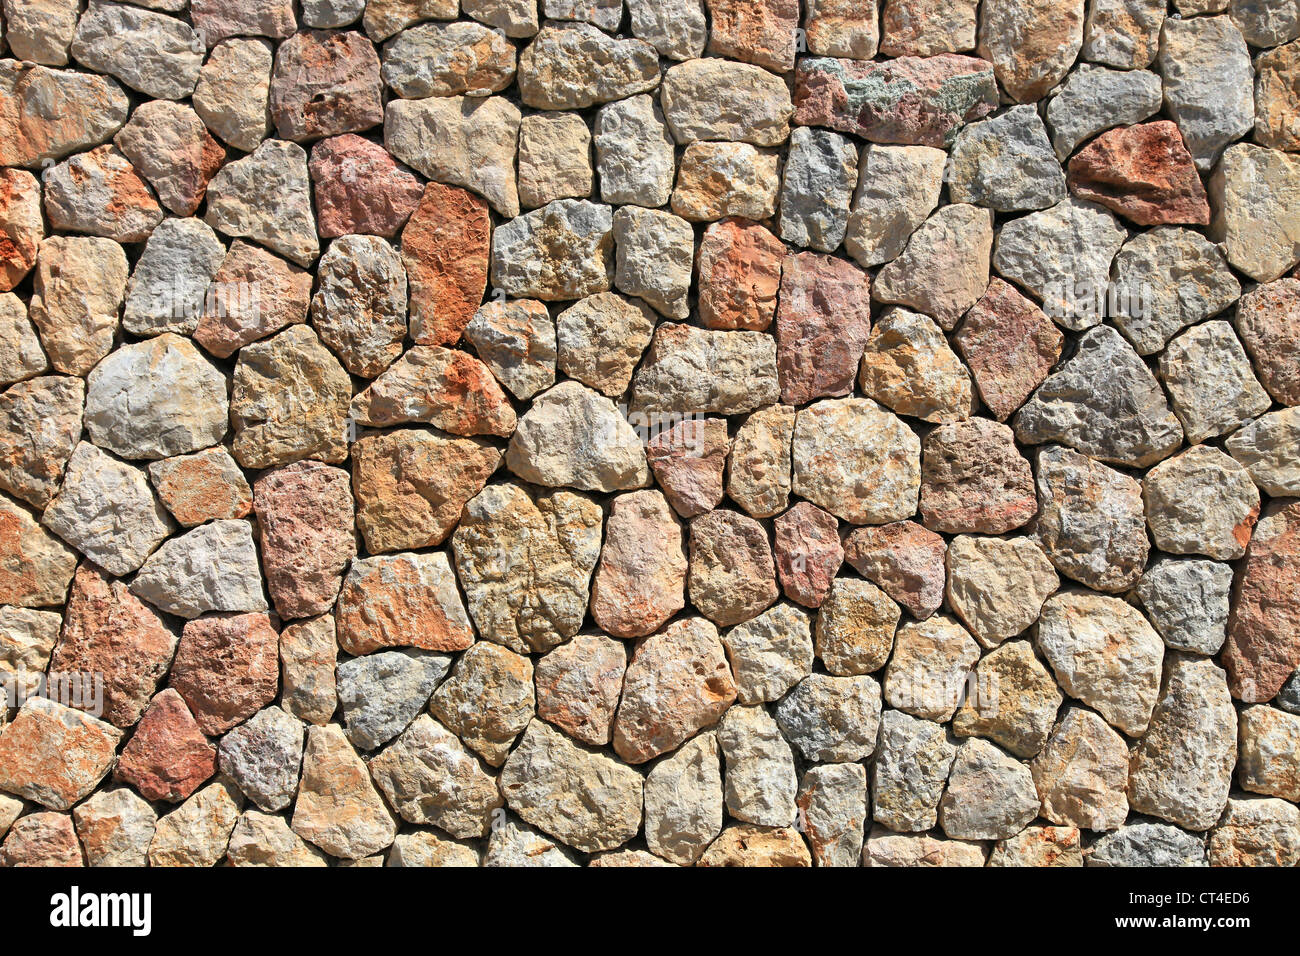 Abstract image of a brightly lit stone wall, these images are perfect for great textures and backgrounds - Stock Image